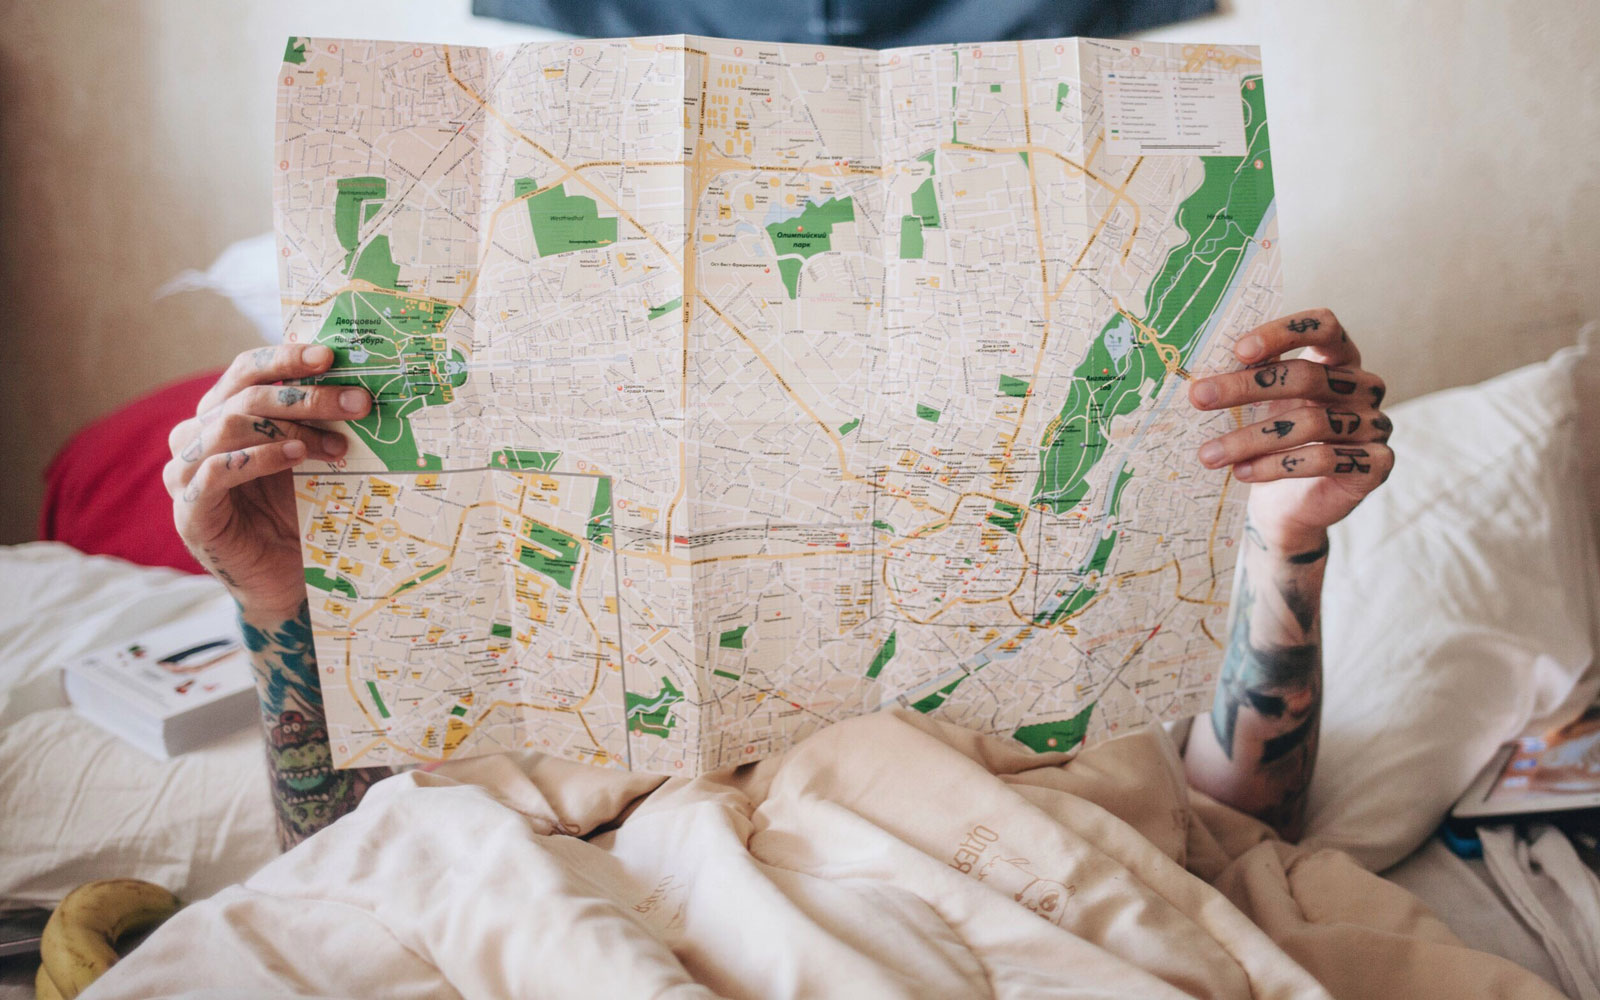 The Best Travel Decor for Inspiring Your Wanderlust at Home